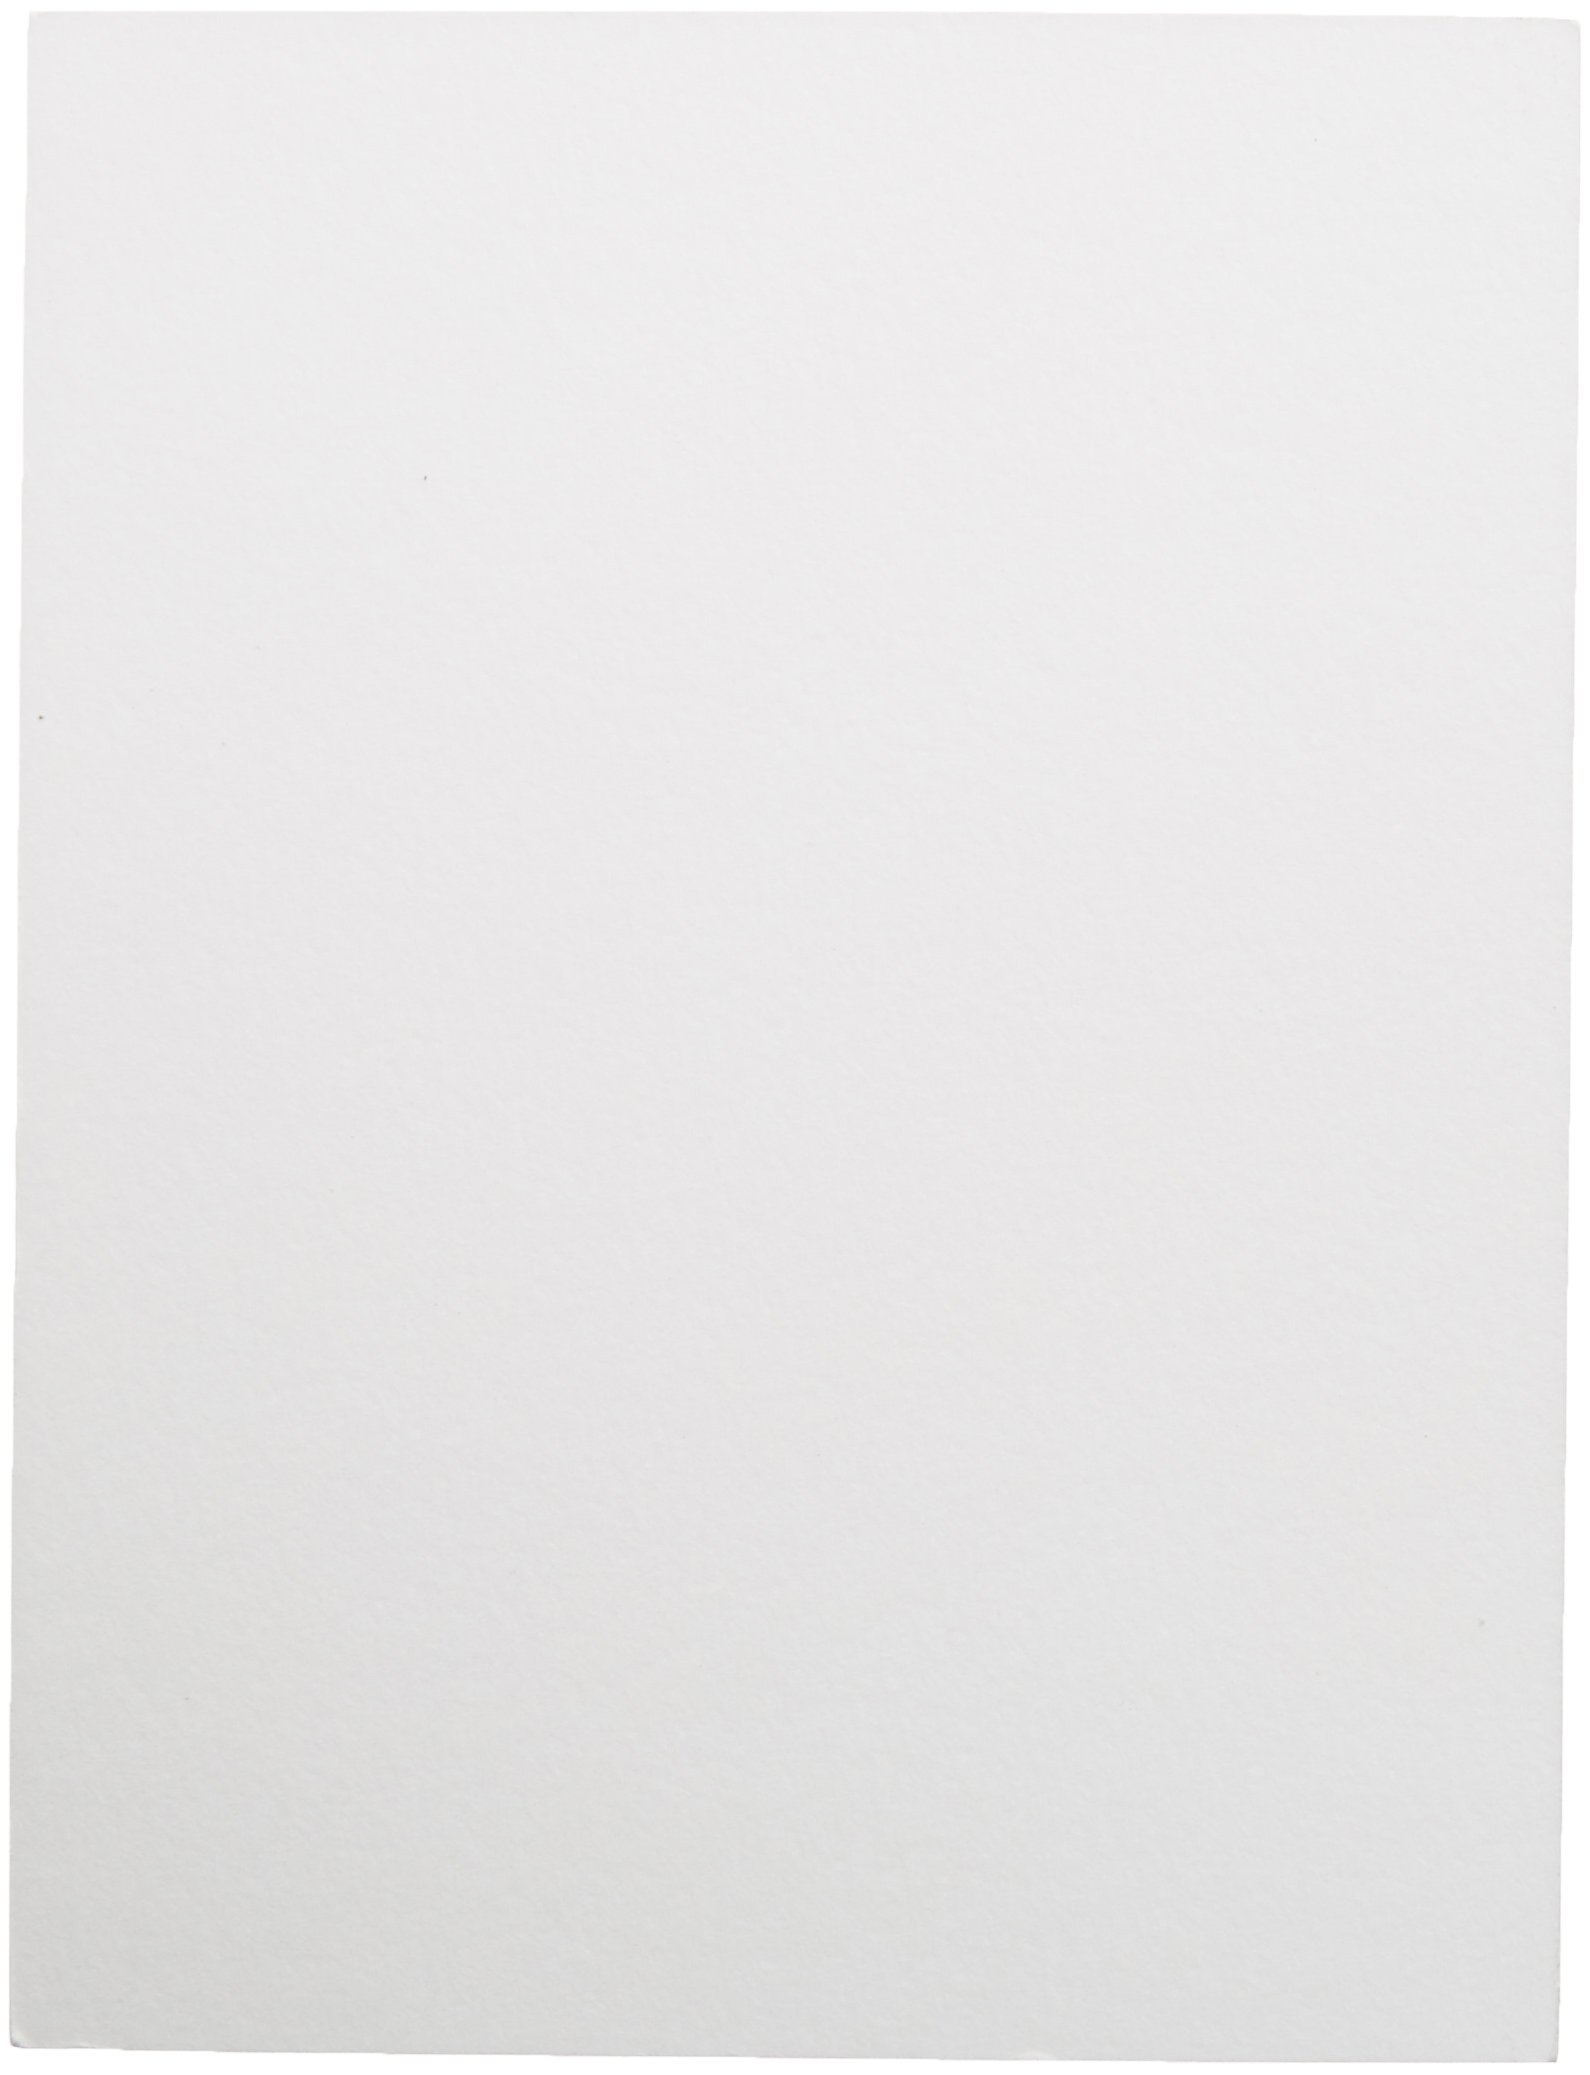 GE Whatman 3030-6189 Cellulose Chromatography Paper Sheet, 4'' Width, 5.25'' Length, 29psi Dry Burst, 130mm/30min Flow Rate, Grade 3MM (Pack of 100)